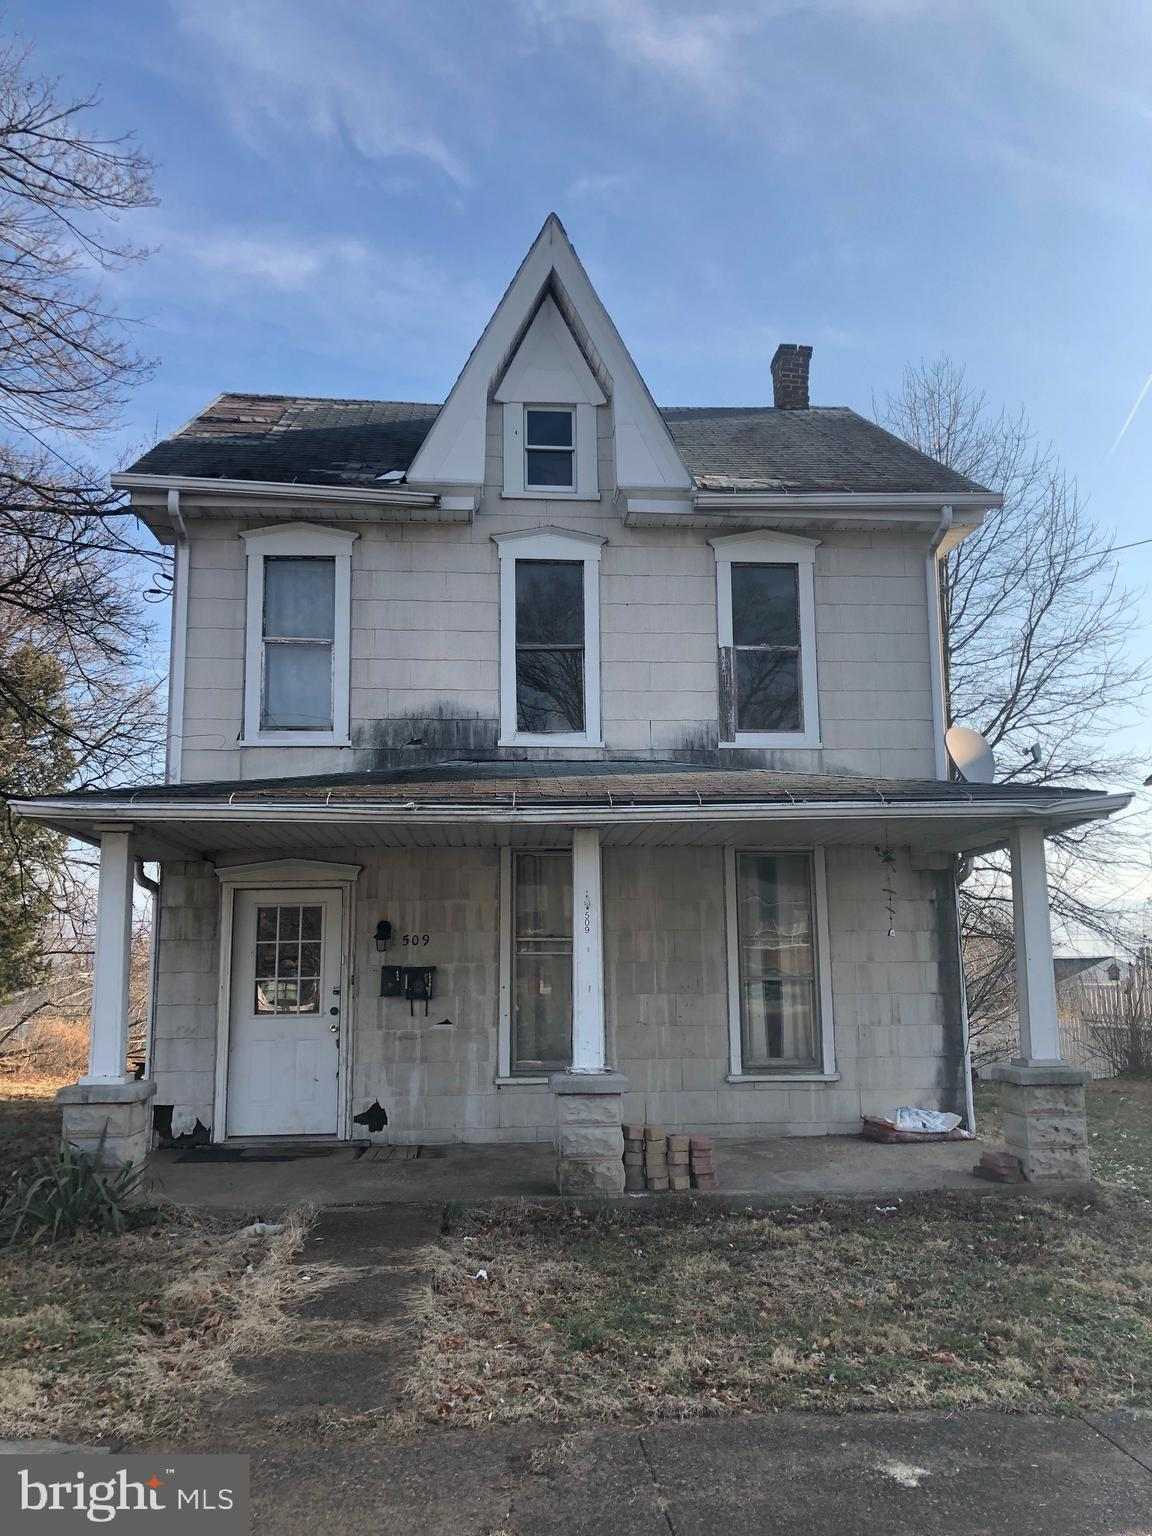 509 MAPLE AVENUE, MARYSVILLE, PA 17053